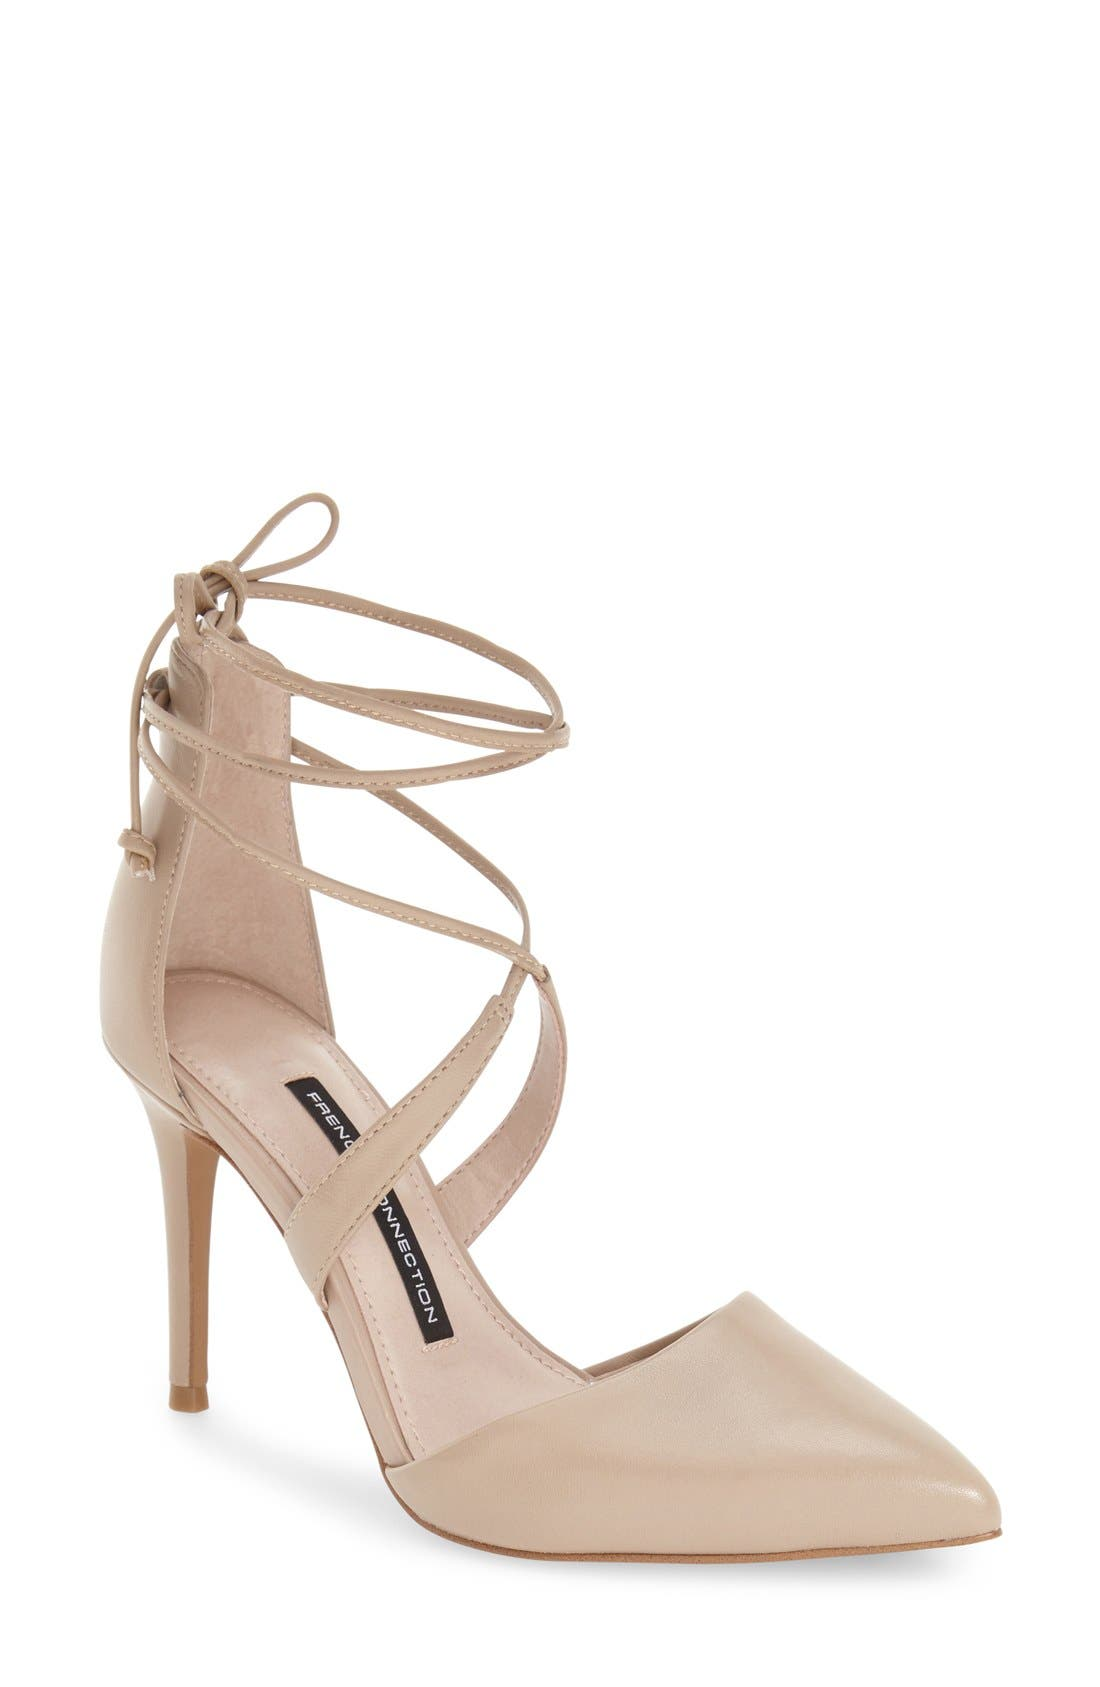 Main Image - French Connection 'Elise' d'Orsay Wraparound Lace Pump (Women)